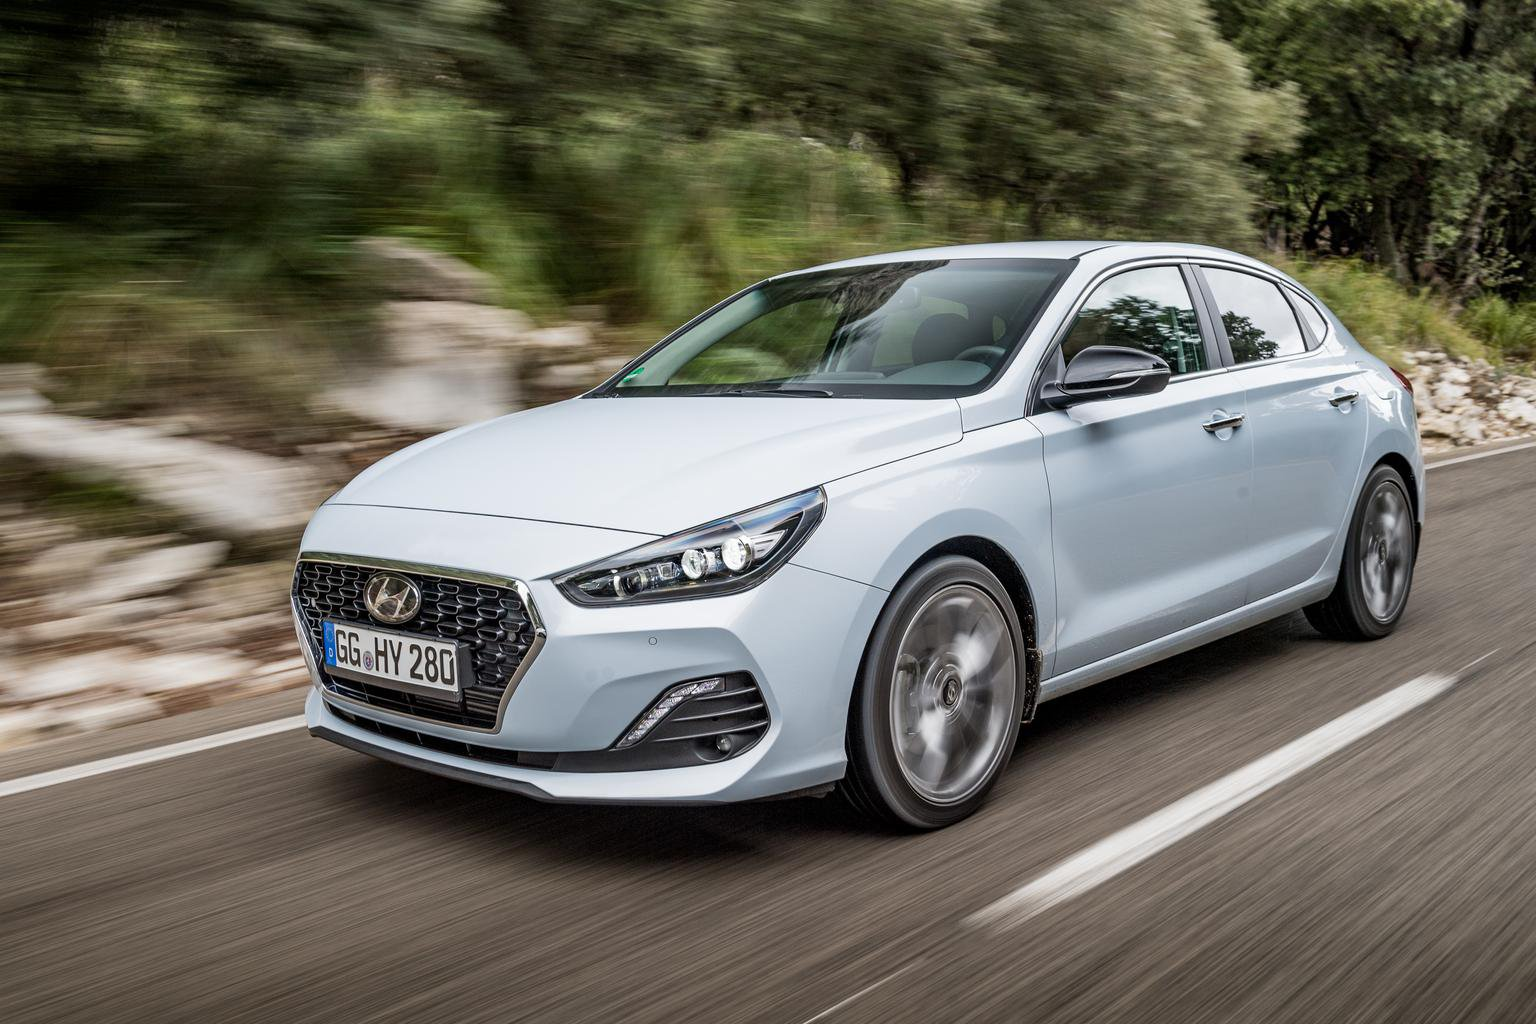 2018 Hyundai i30 Fastback review - verdict